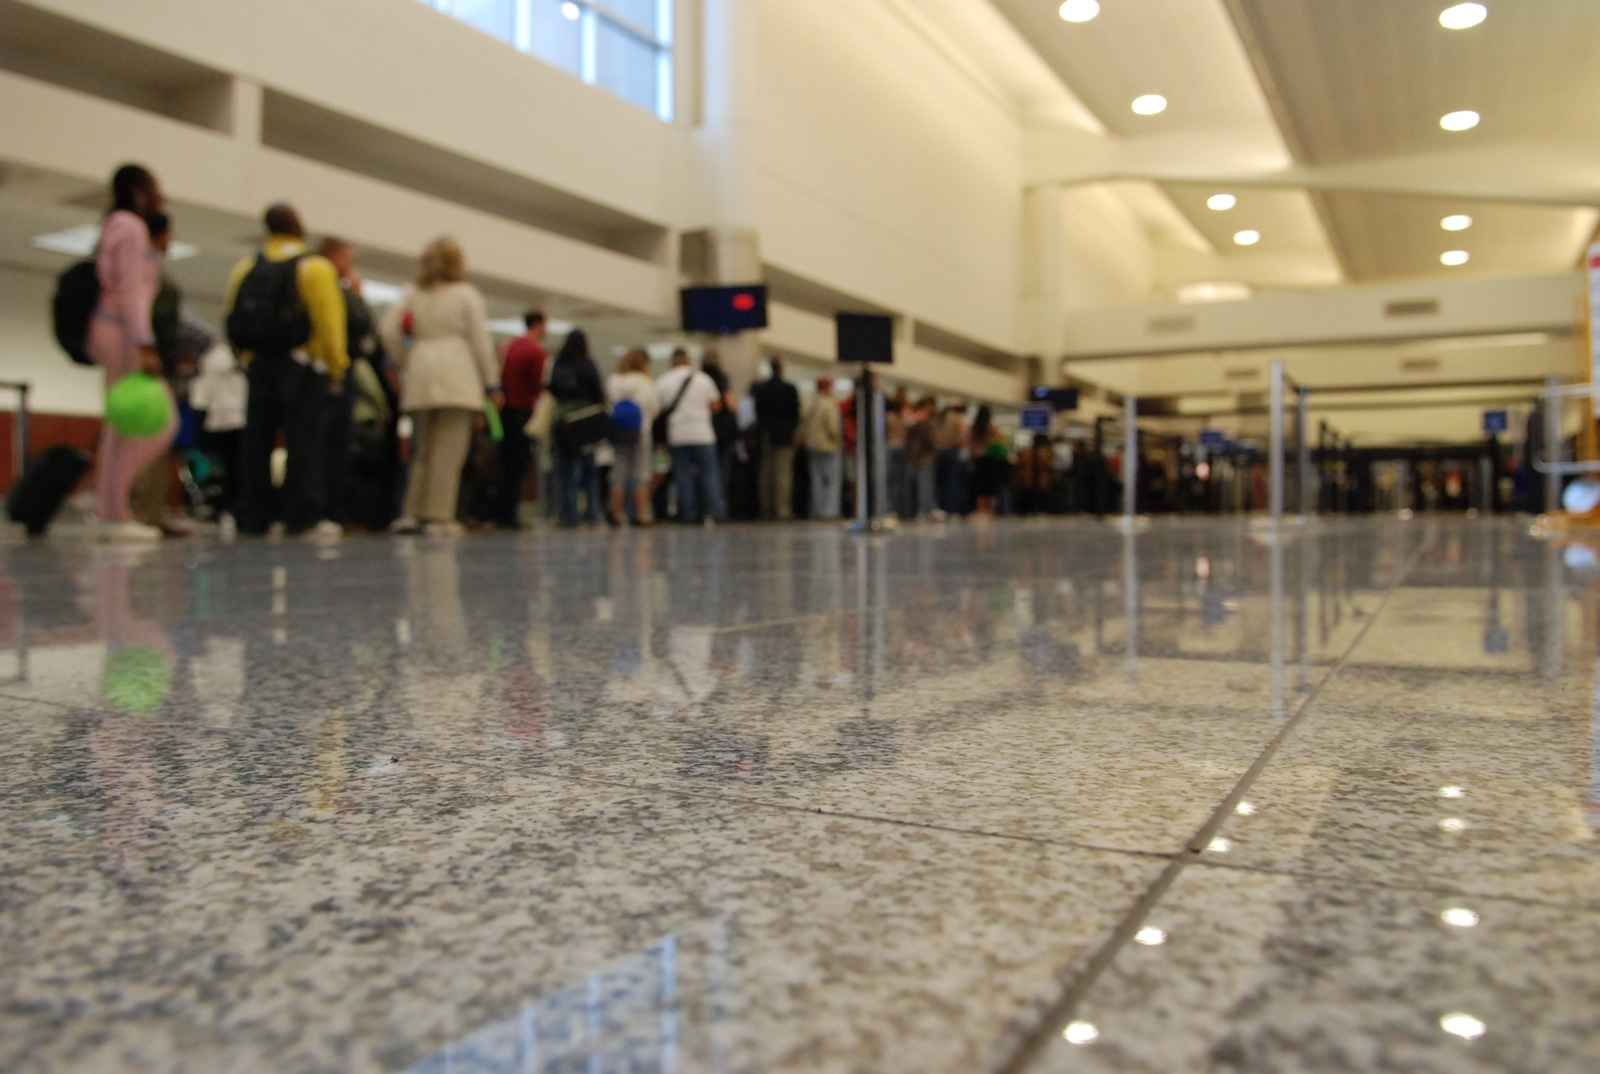 Passengers who miss a flight due to security queues unlikely to qualify for compensation